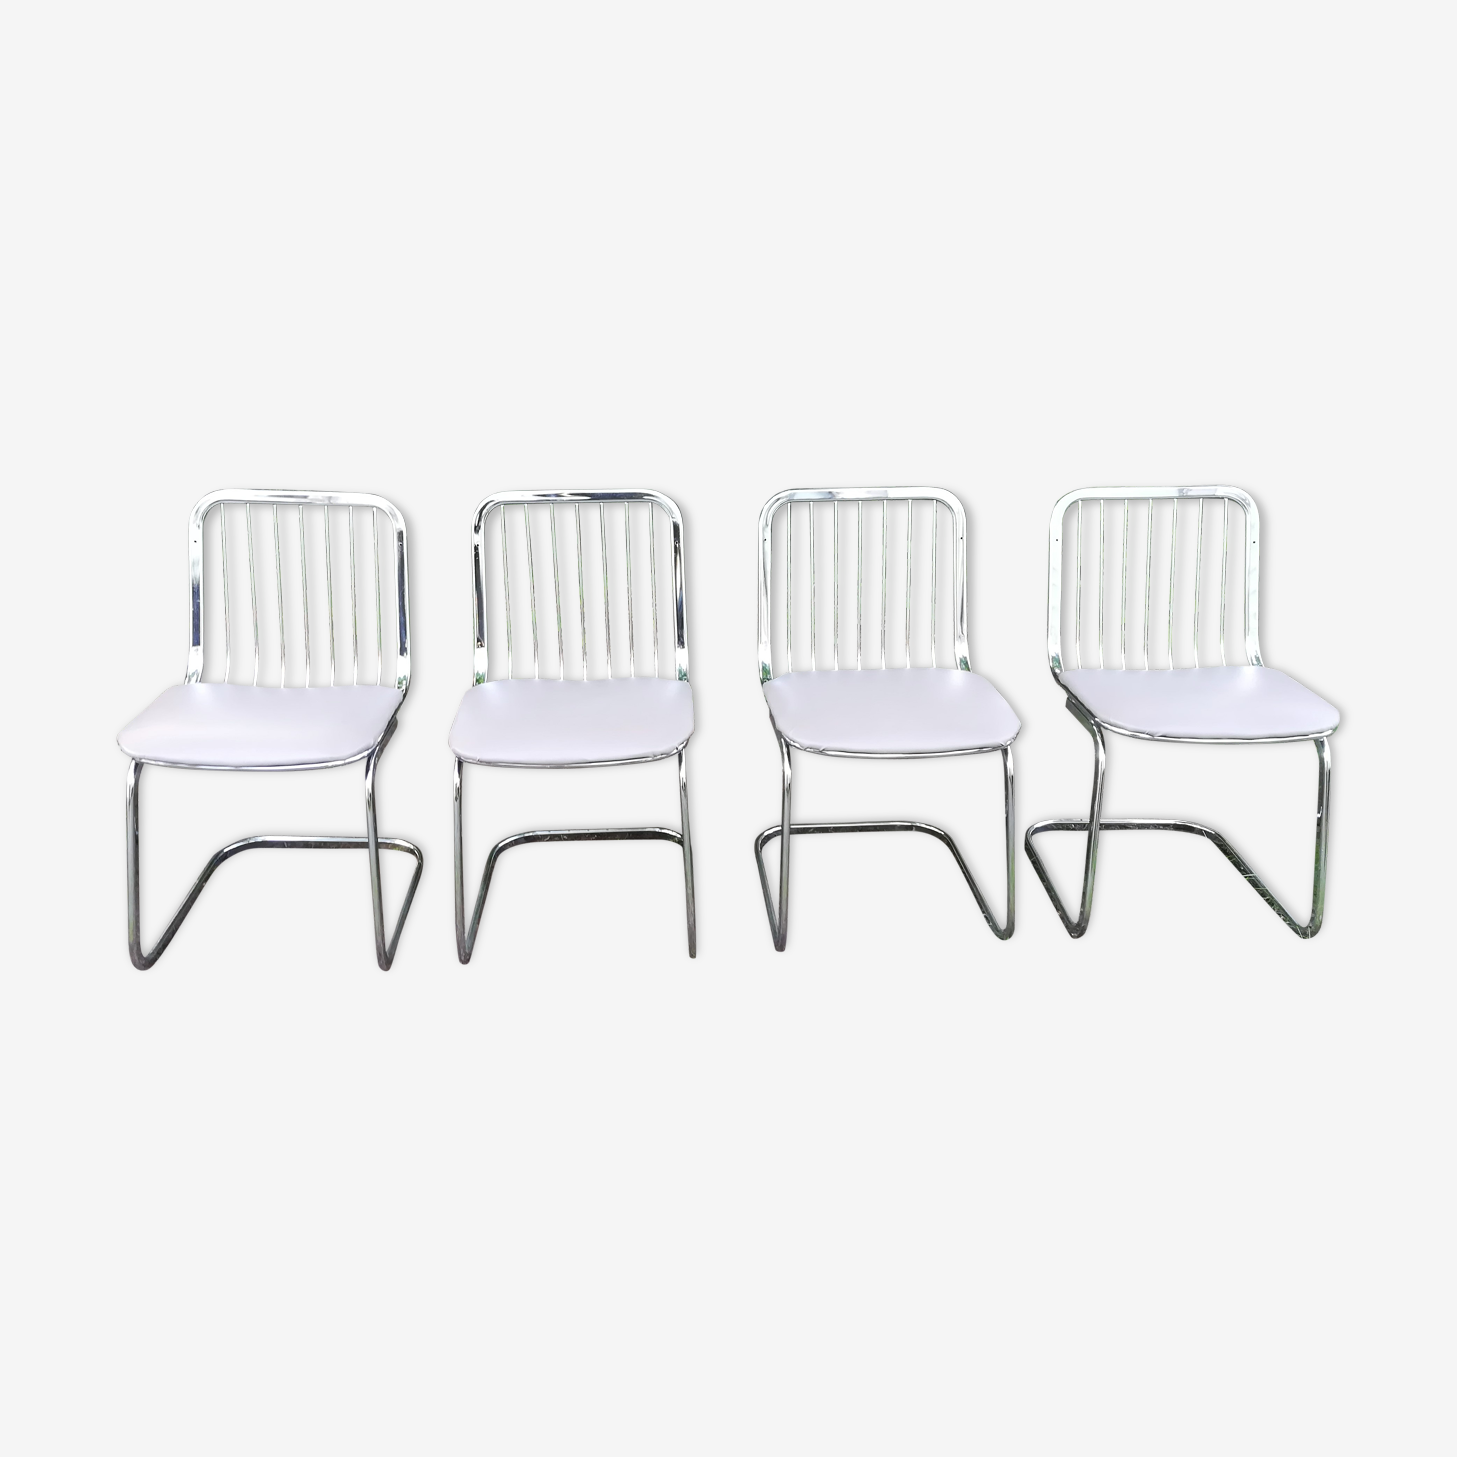 Set of 4 chromed and leatherette chairs